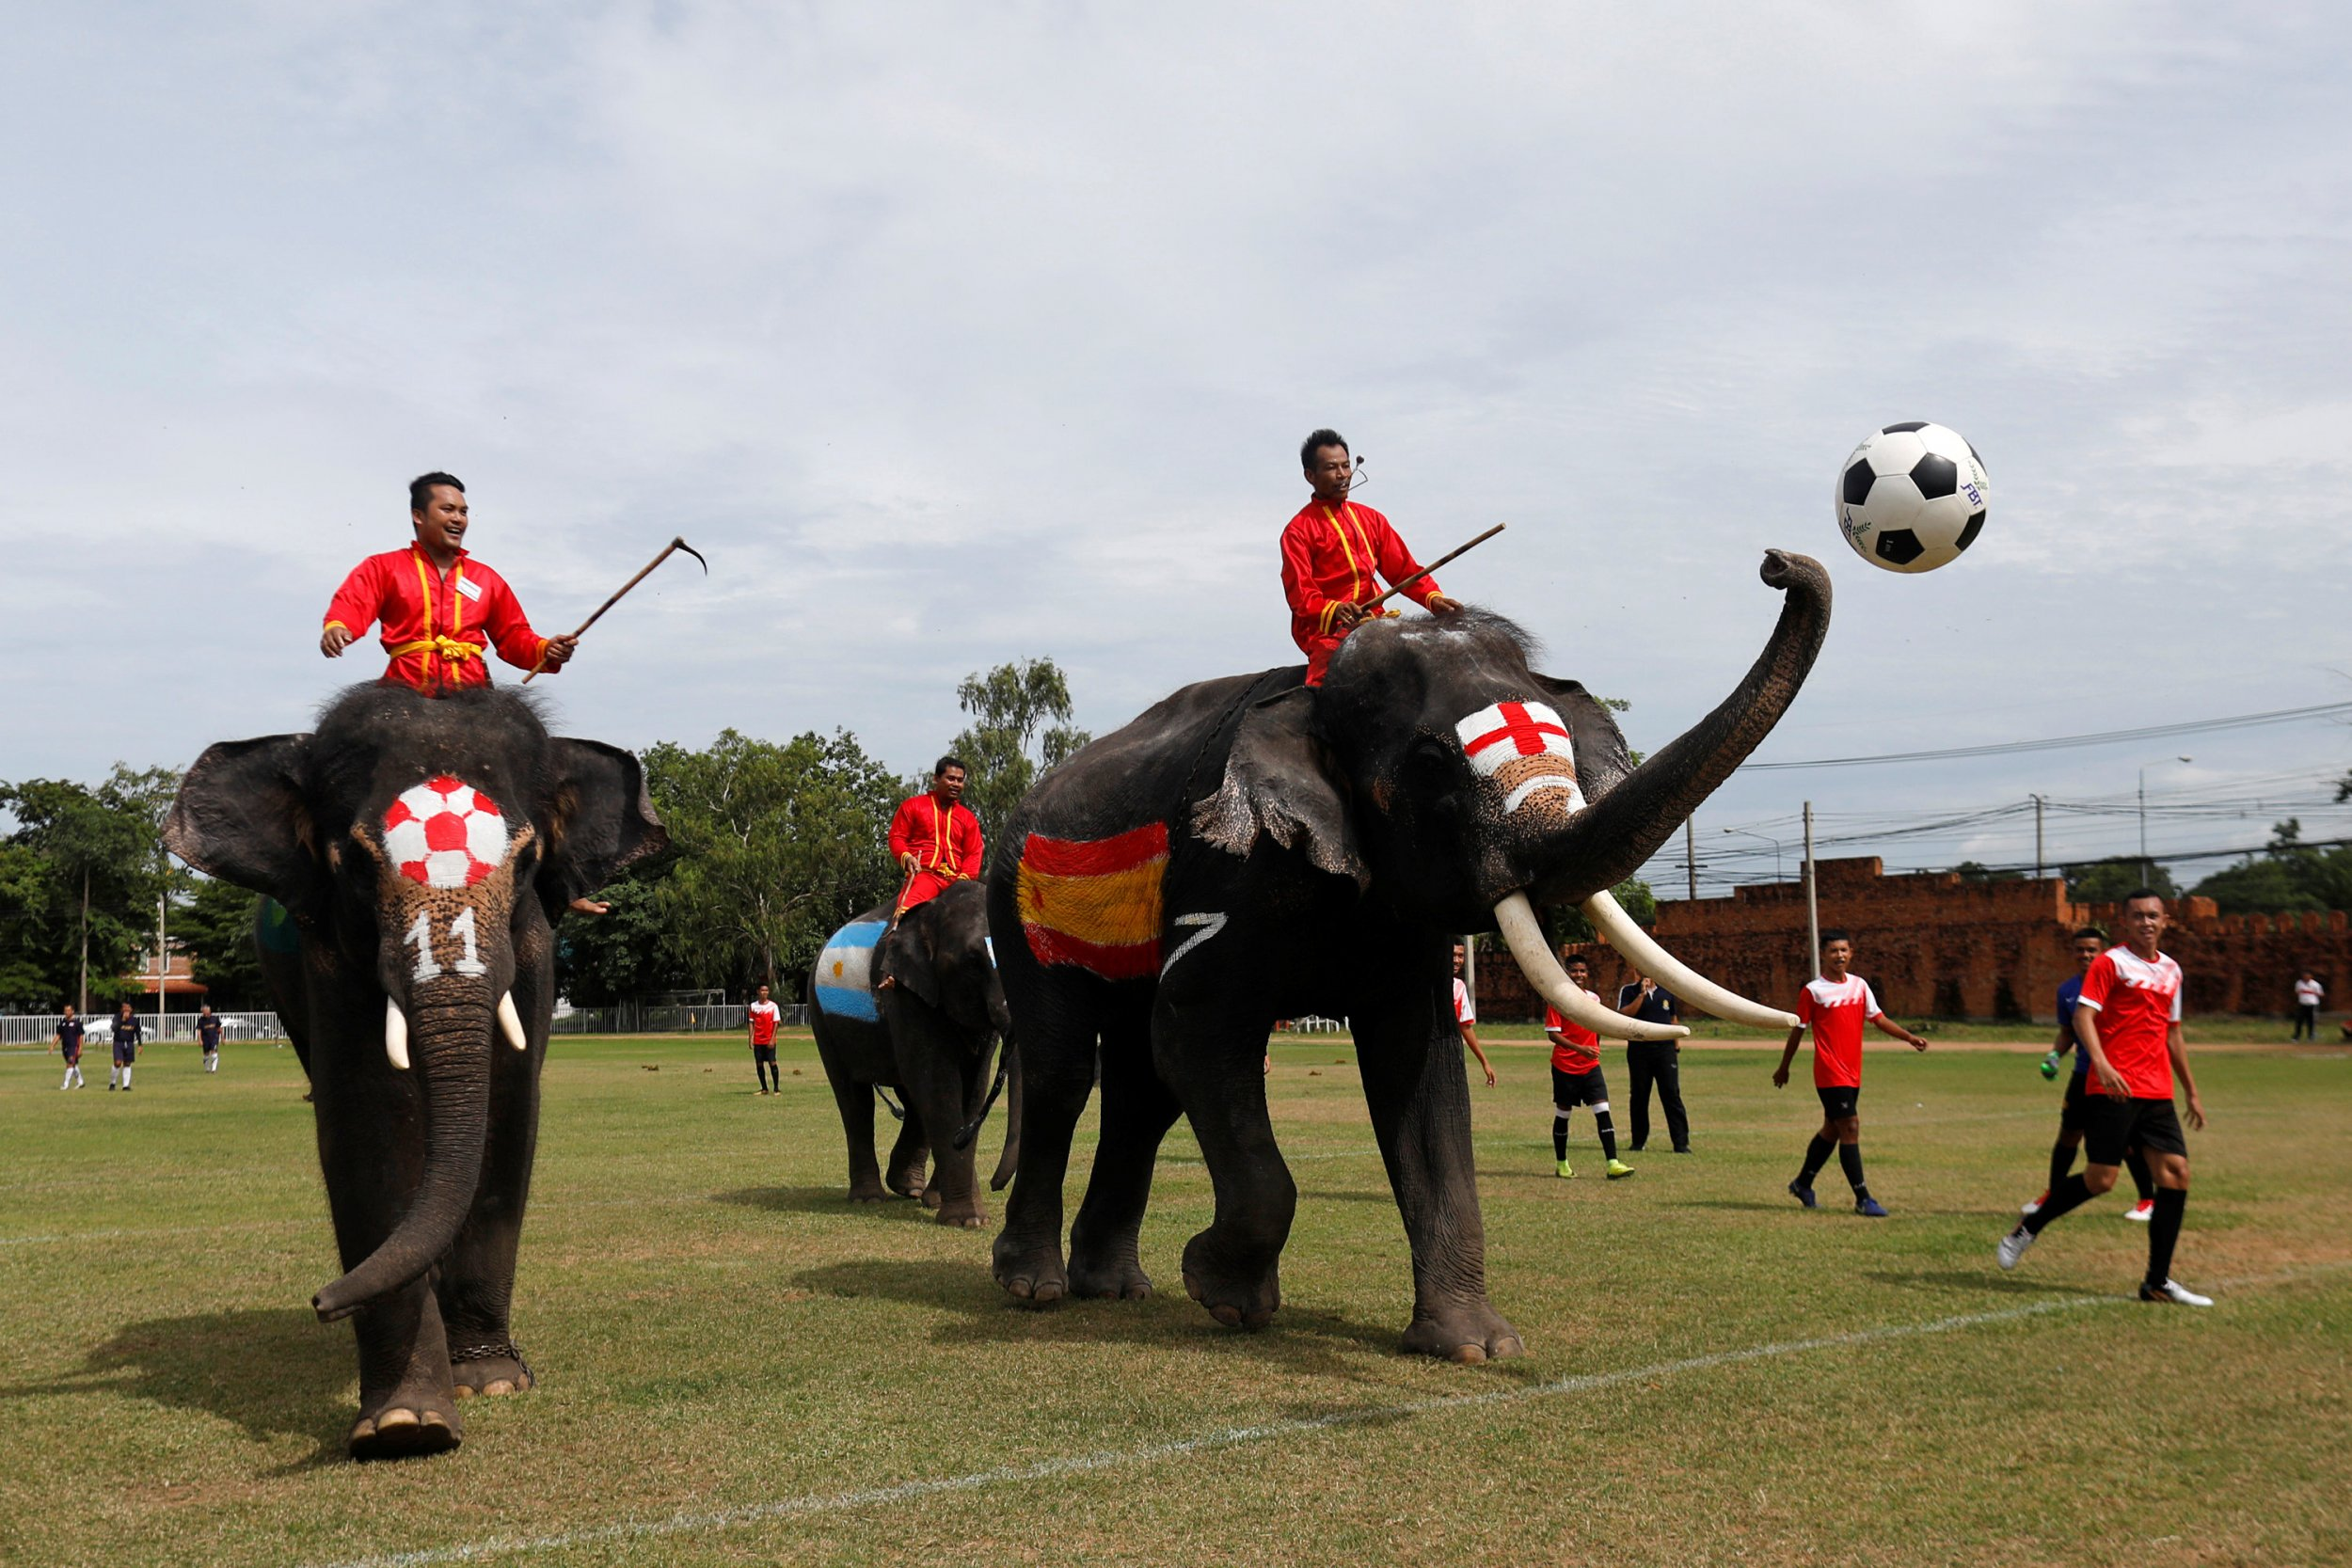 44099e0fc99bd9 2018-06-12T060623Z 1950169149 RC1C03BFD380 RTRMADP 3 SOCCER-WORLDCUP- THAILAND-ELEPHANTS